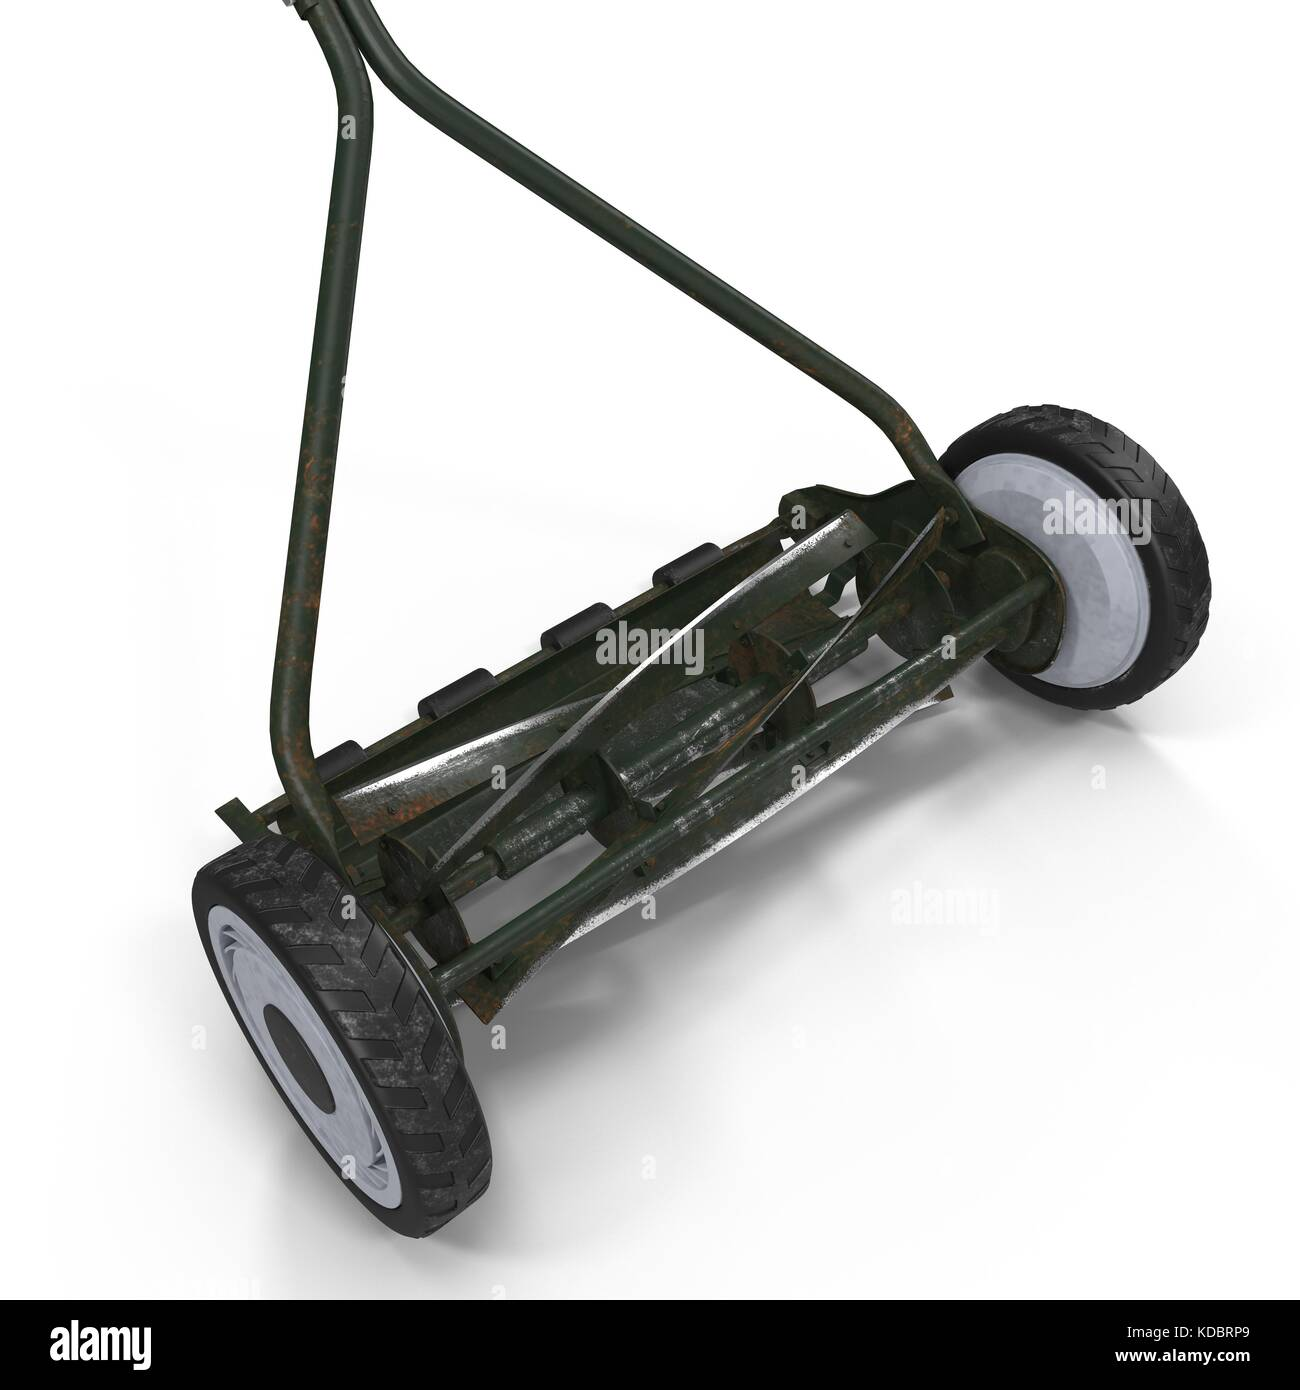 Vintage Lawn Mower Stock Photos & Vintage Lawn Mower Stock Images ...